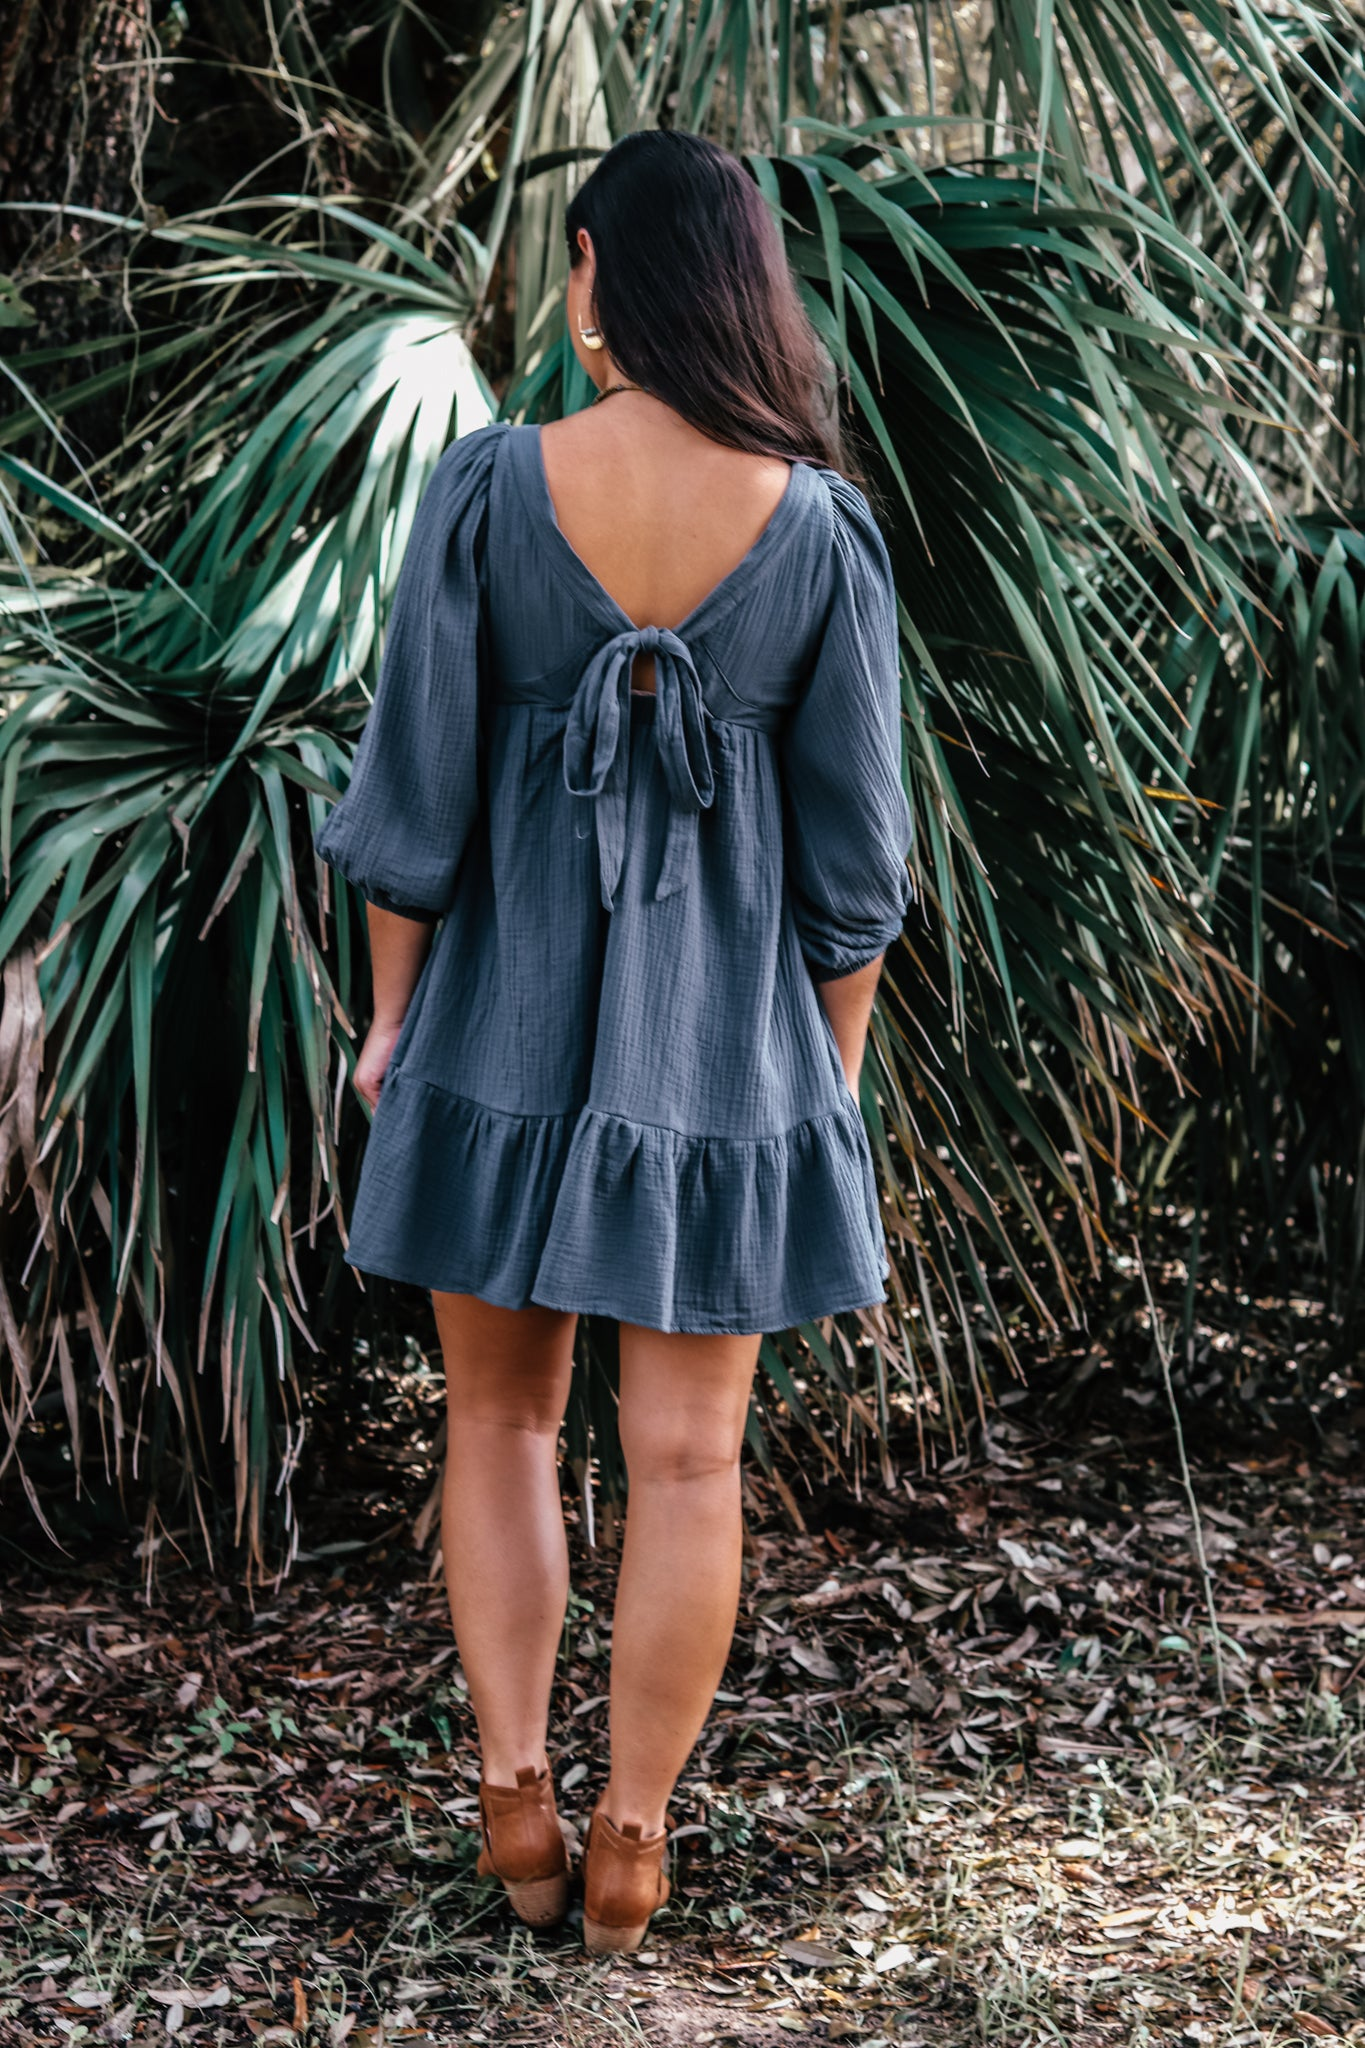 Gauzy Navy/Teal Babydoll Dress